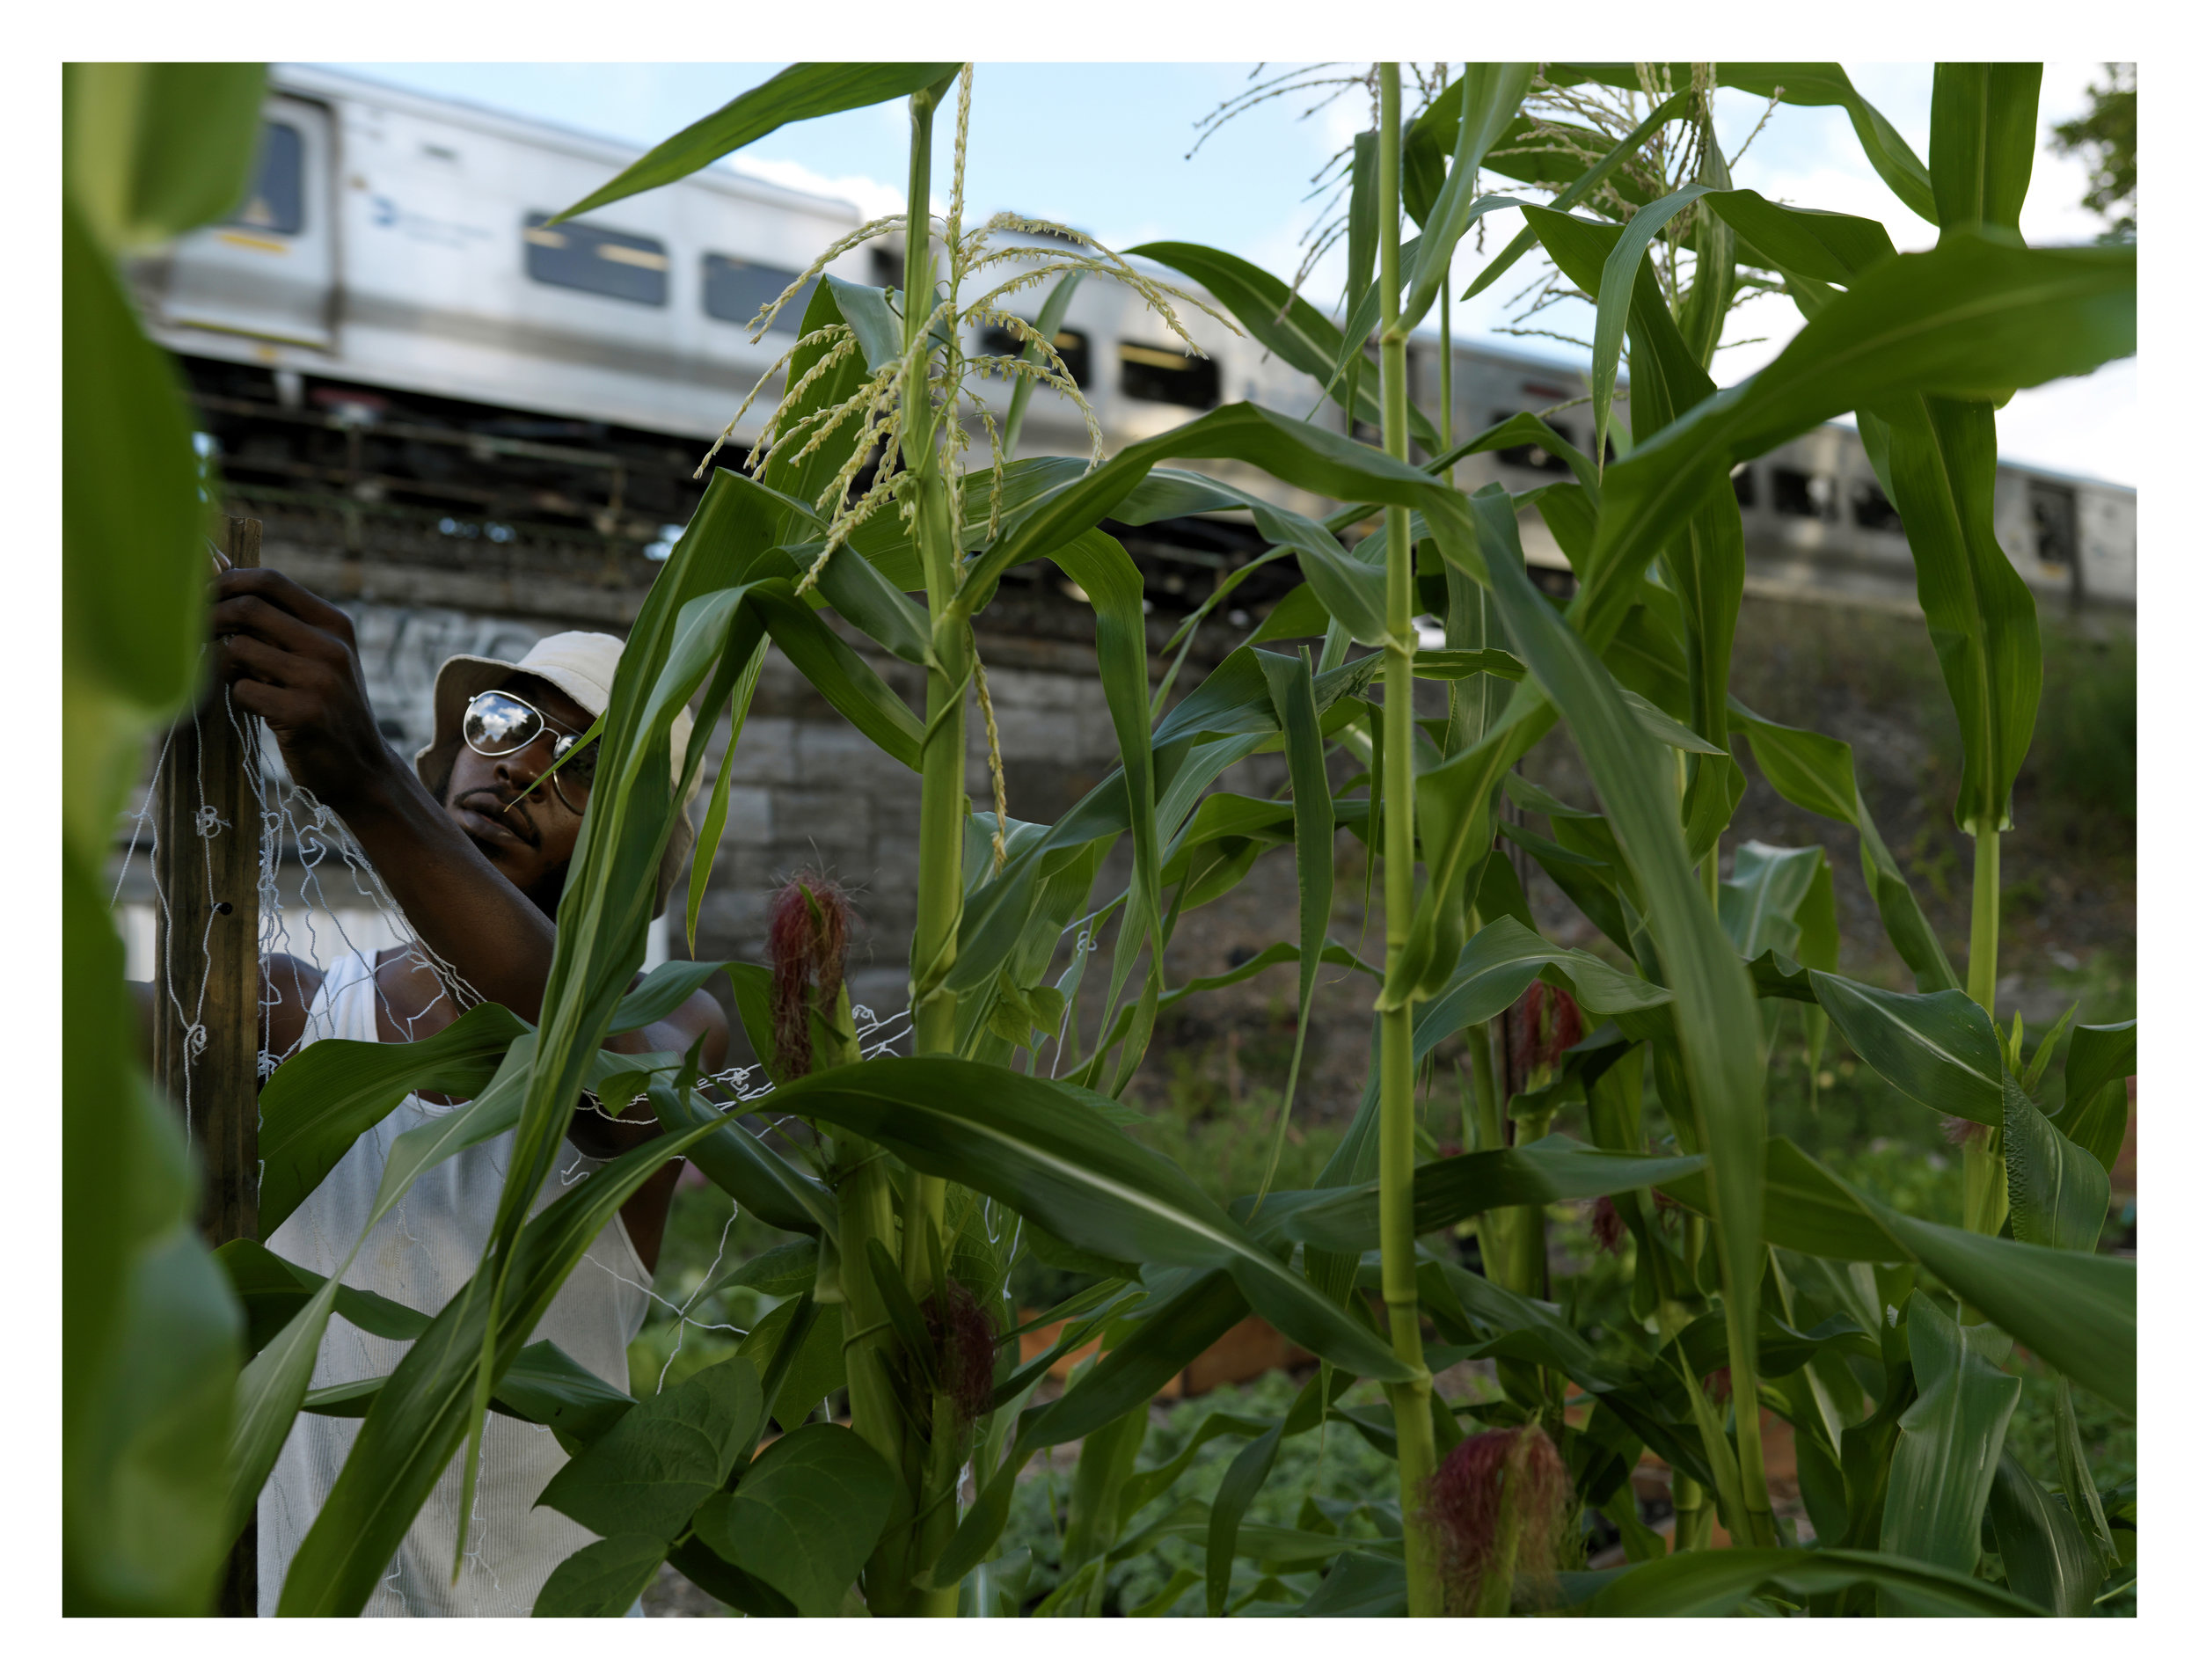 A volunteer gardener at Finca Del Sur, a yaer old garden in the South Bronx,  tends the corn stalks while a passenger train goes by in the background.  The garden was created on an empty plot of land bordered by a high way exit ramp and a commuter train line.    Volunteers grew, corn, cabbage, eggplant, apples, peppers,  etc.  In 2011, La Finca Del Sur  (The point of the south)  will be the location for a newly created farm school